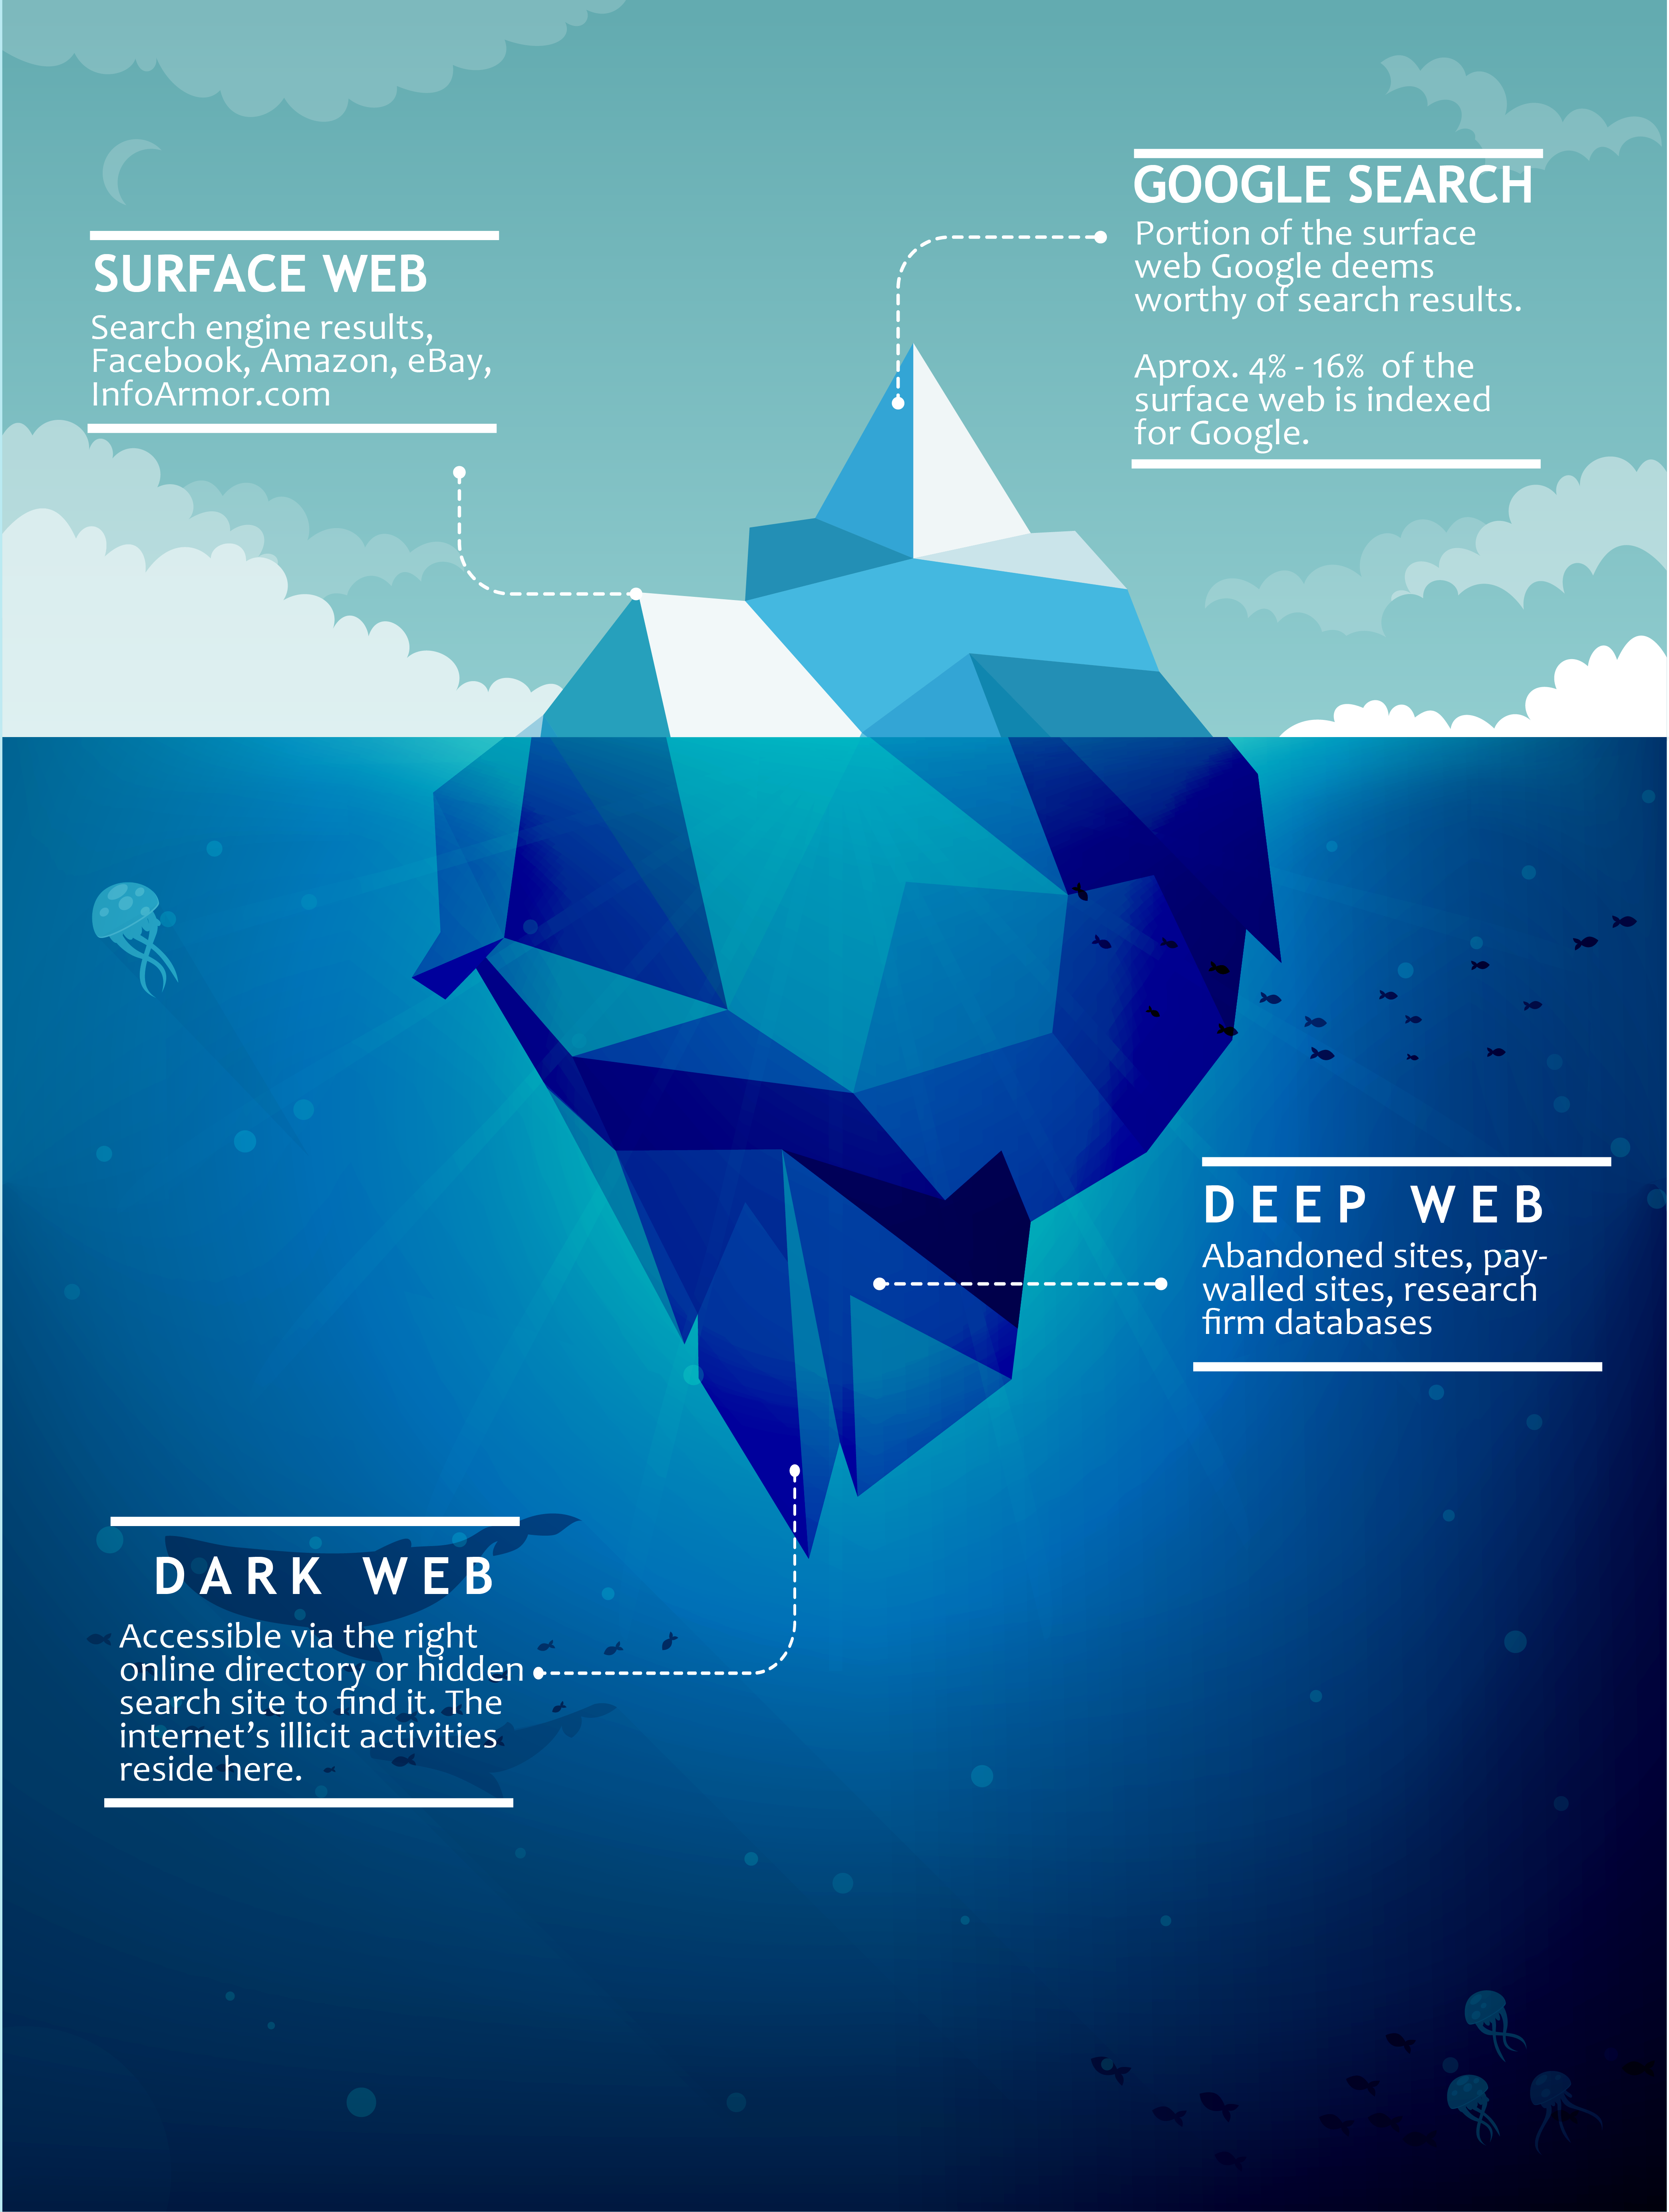 iceberg-internet-deep-web-dark-web